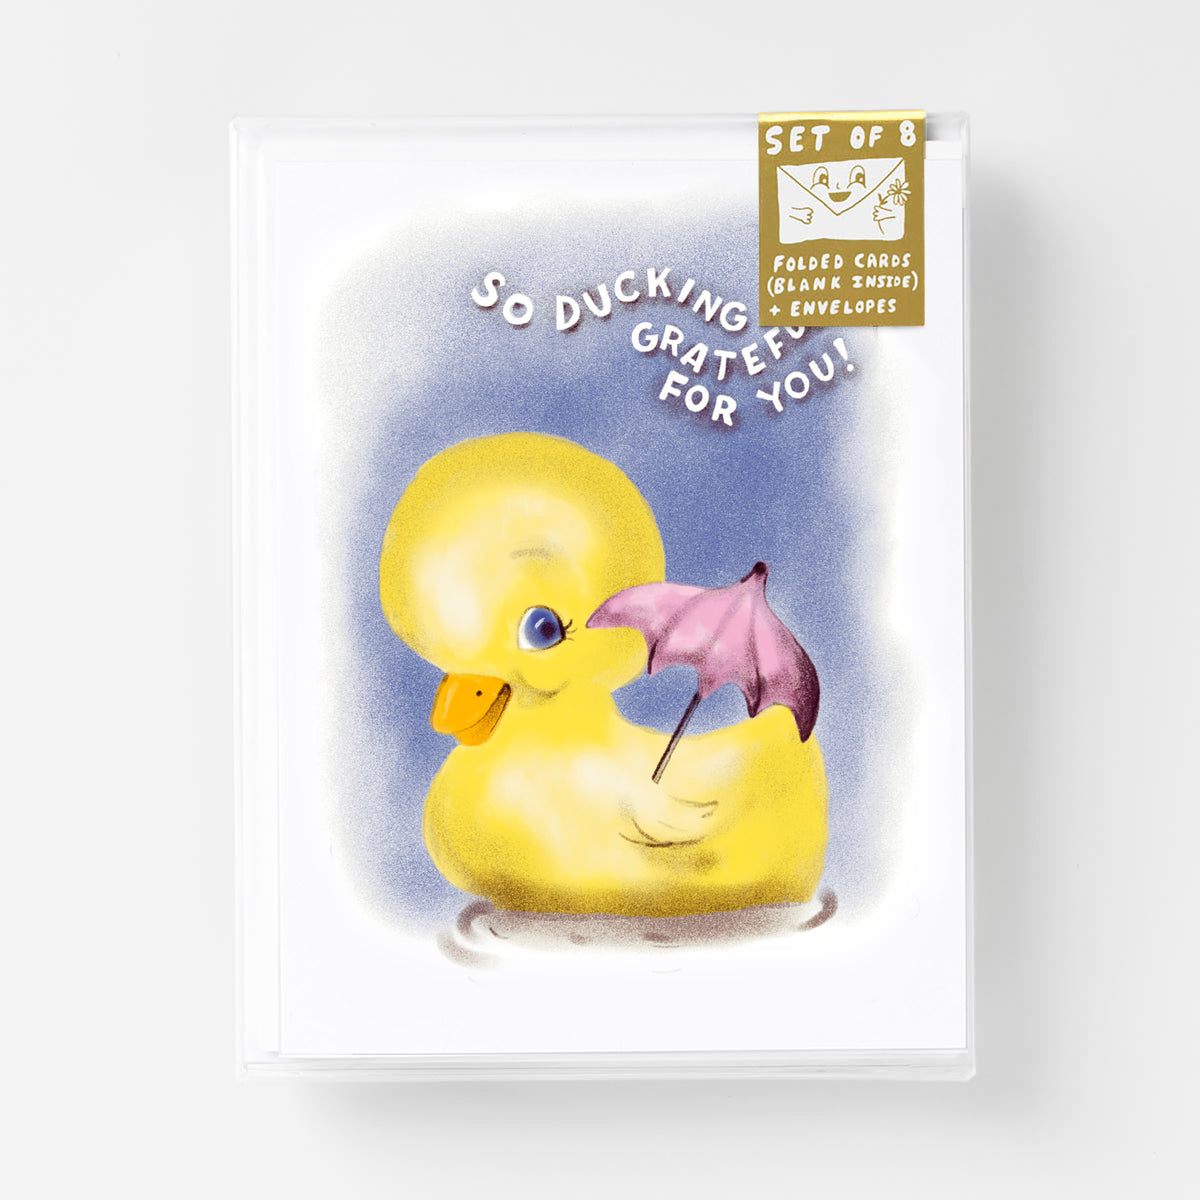 CSR213 So Ducking Grateful For You! - Risograph Card Set